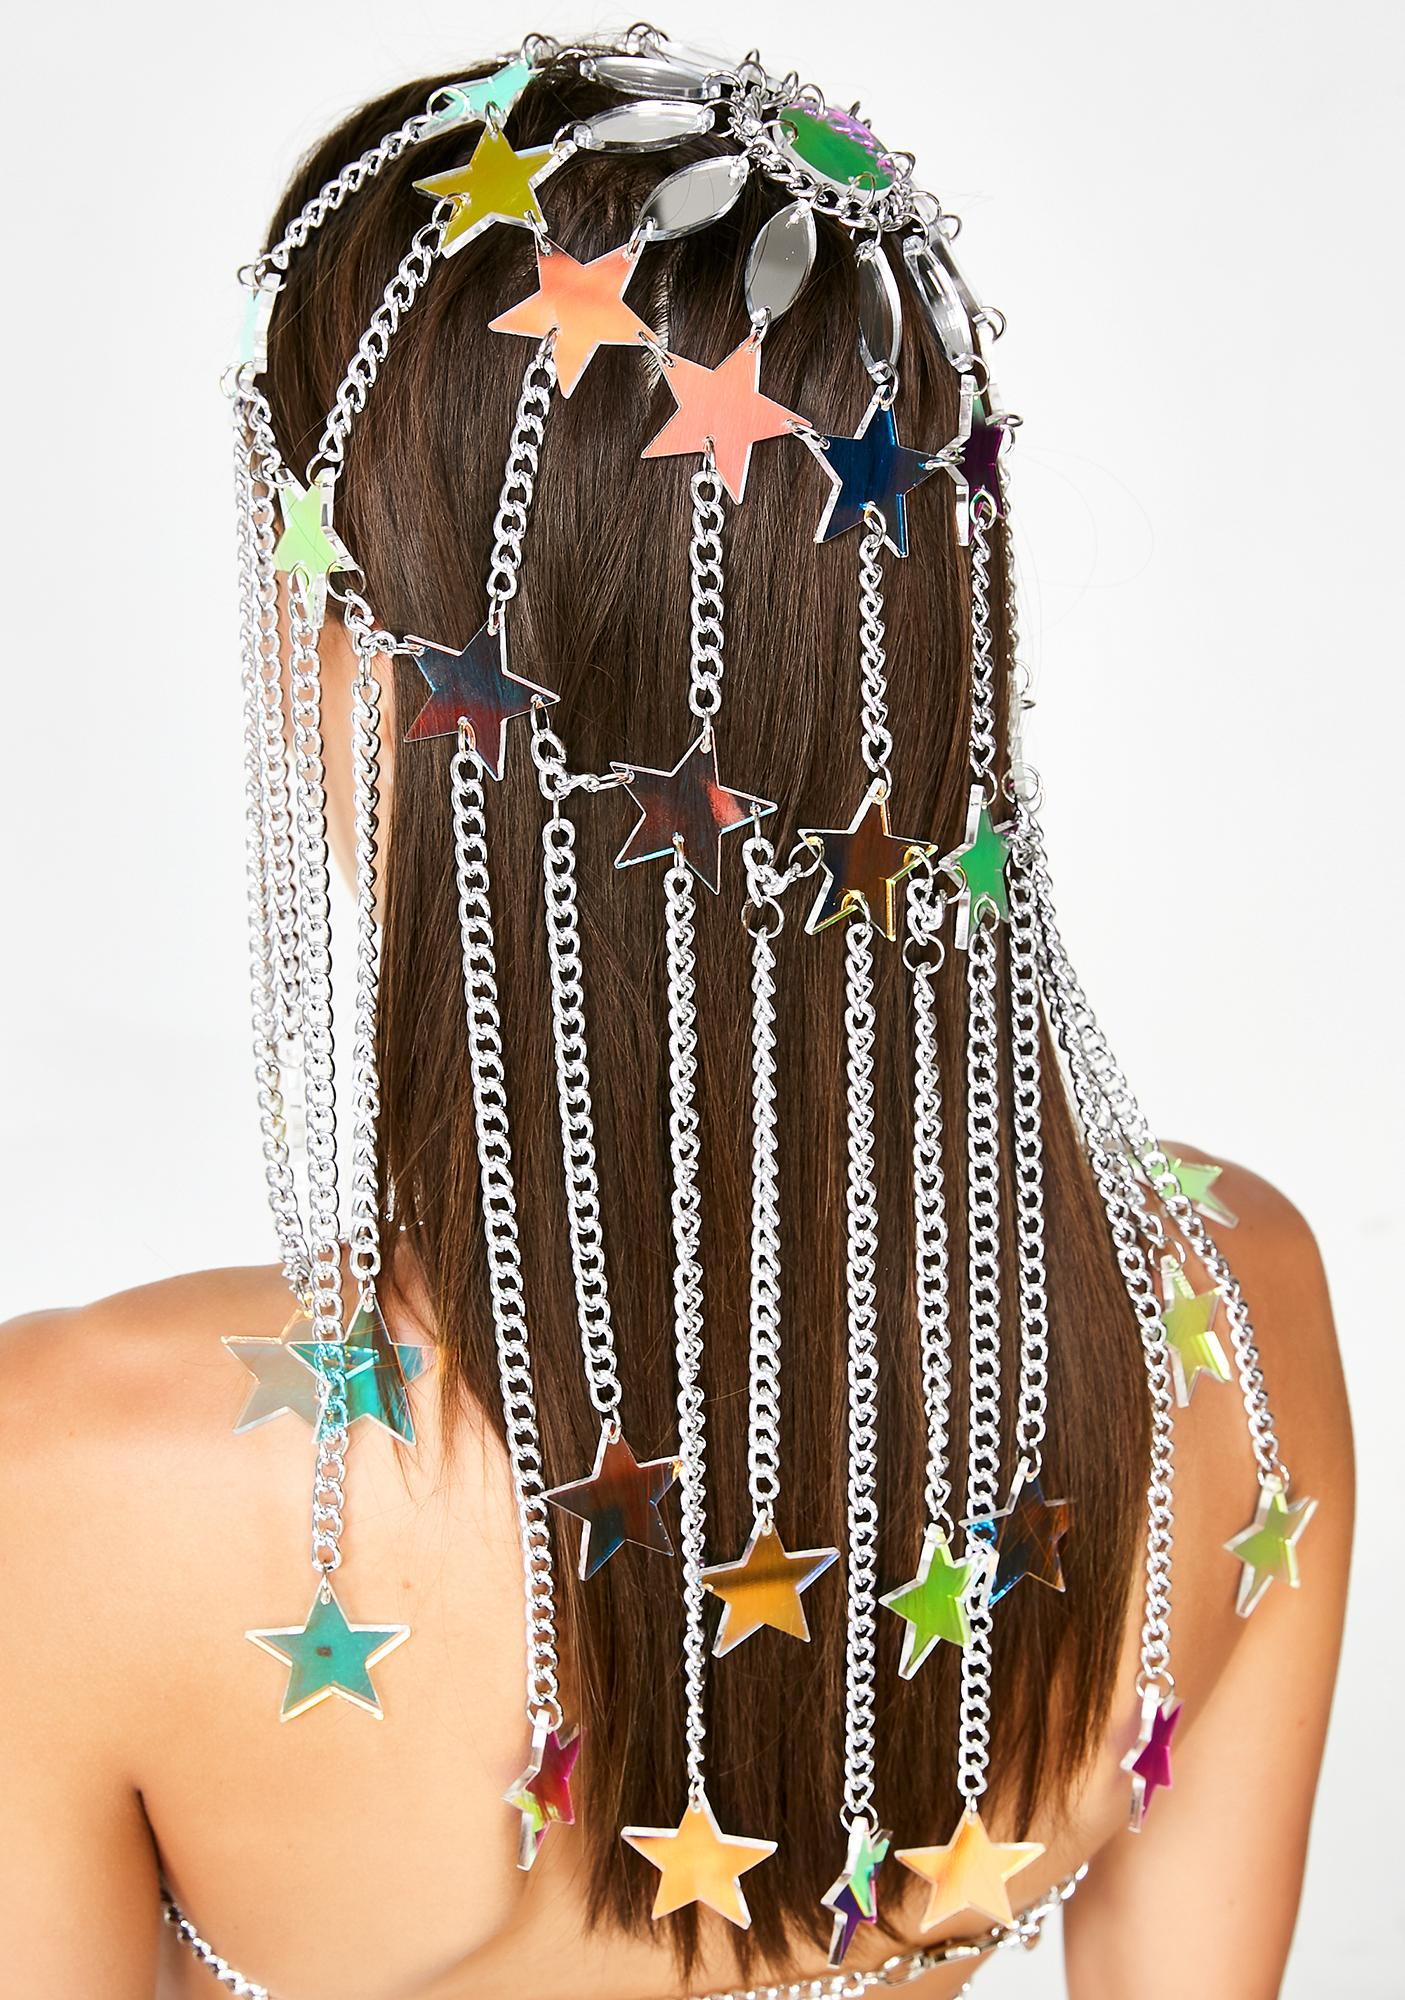 Claudia Pink Jewellry Iridescent Star Headpiece